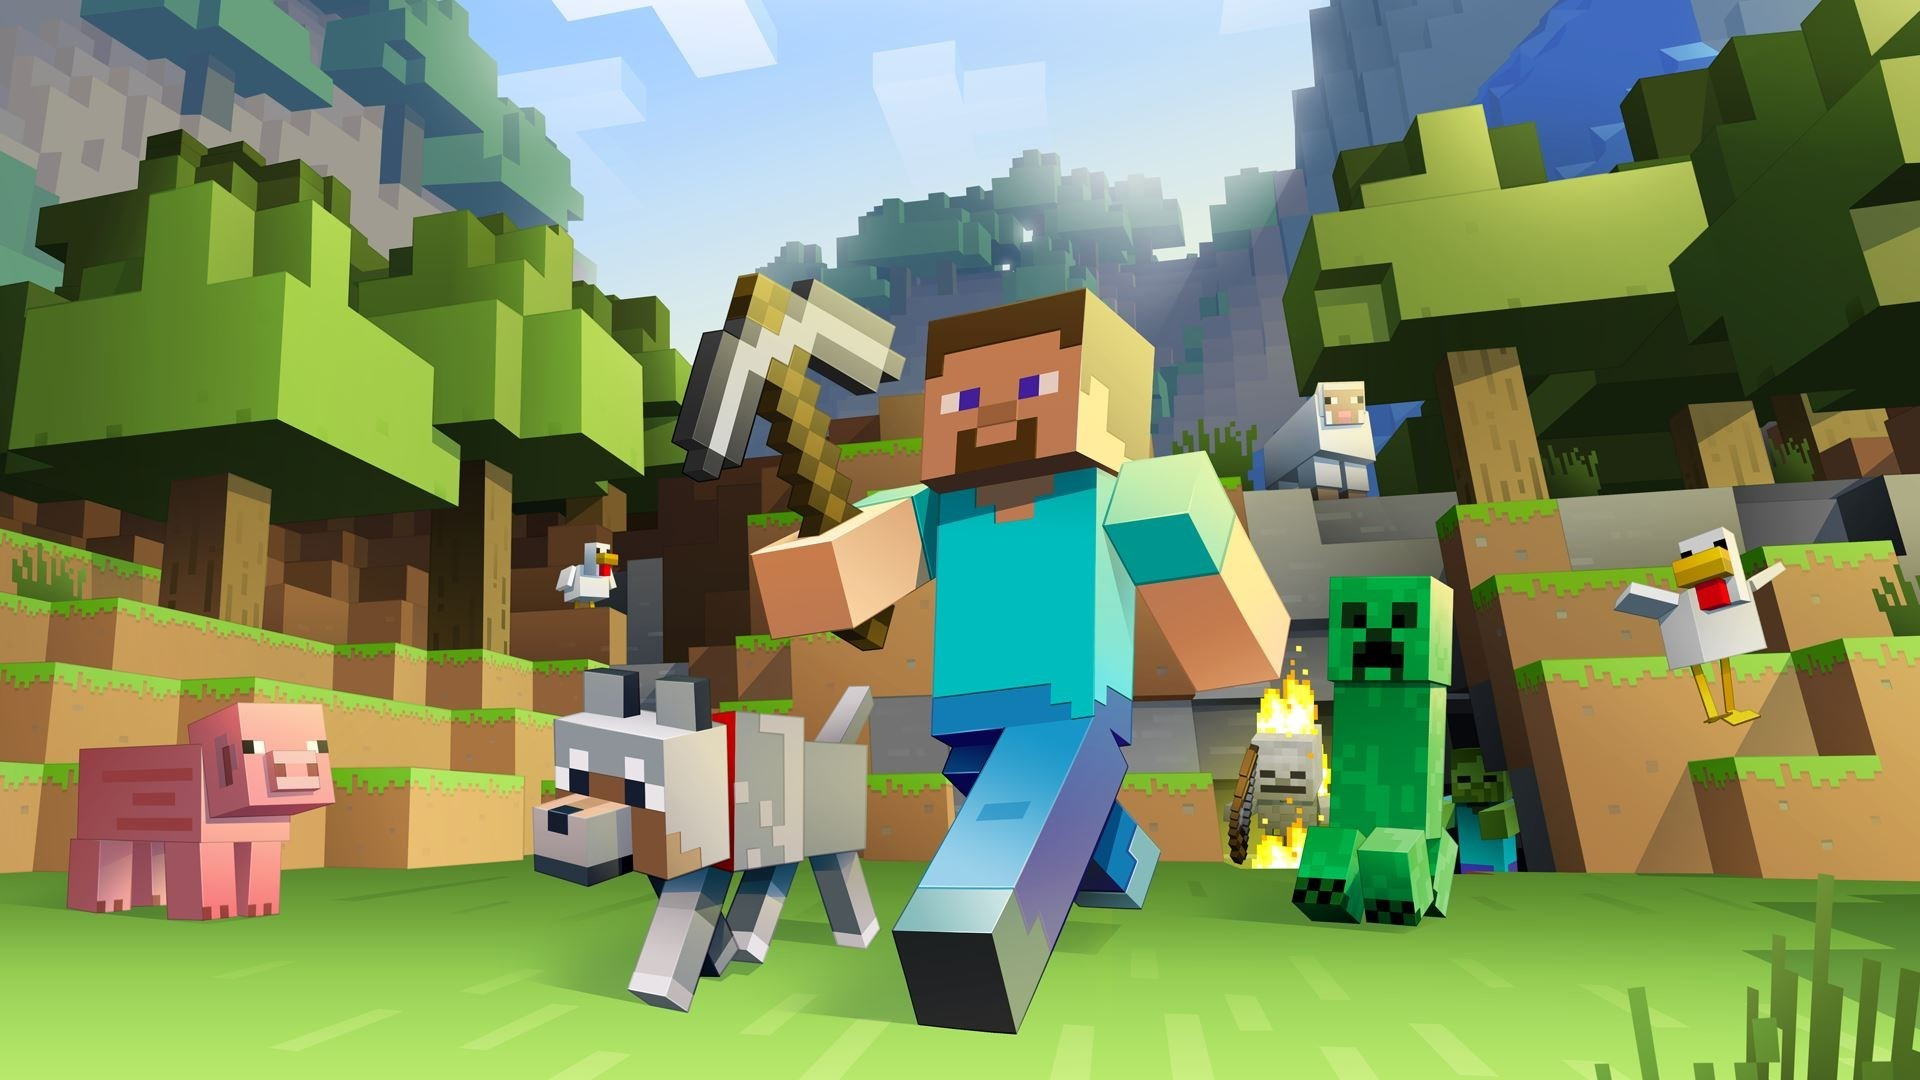 Best Wallpaper Minecraft Home Screen - 48874-download-minecraft-backgrounds-1920x1080-picture  You Should Have_1001865.jpg